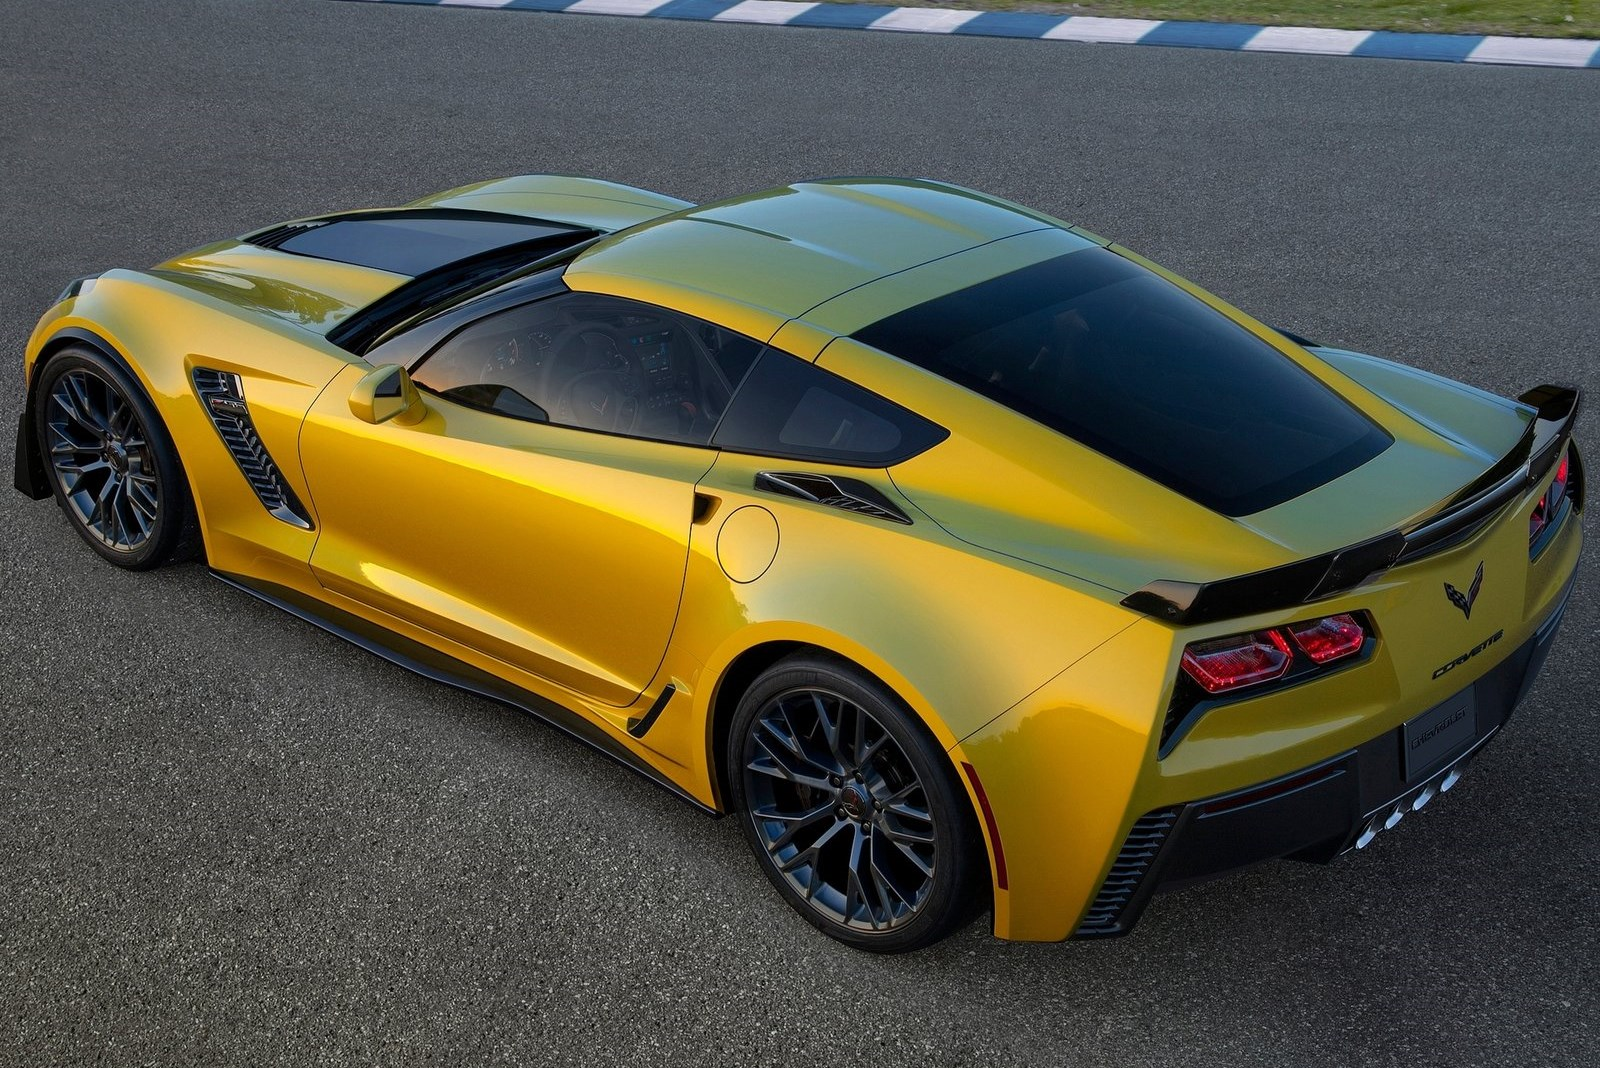 Chevrolet Corvette Z06 Stingray (C7) - AutoTribute